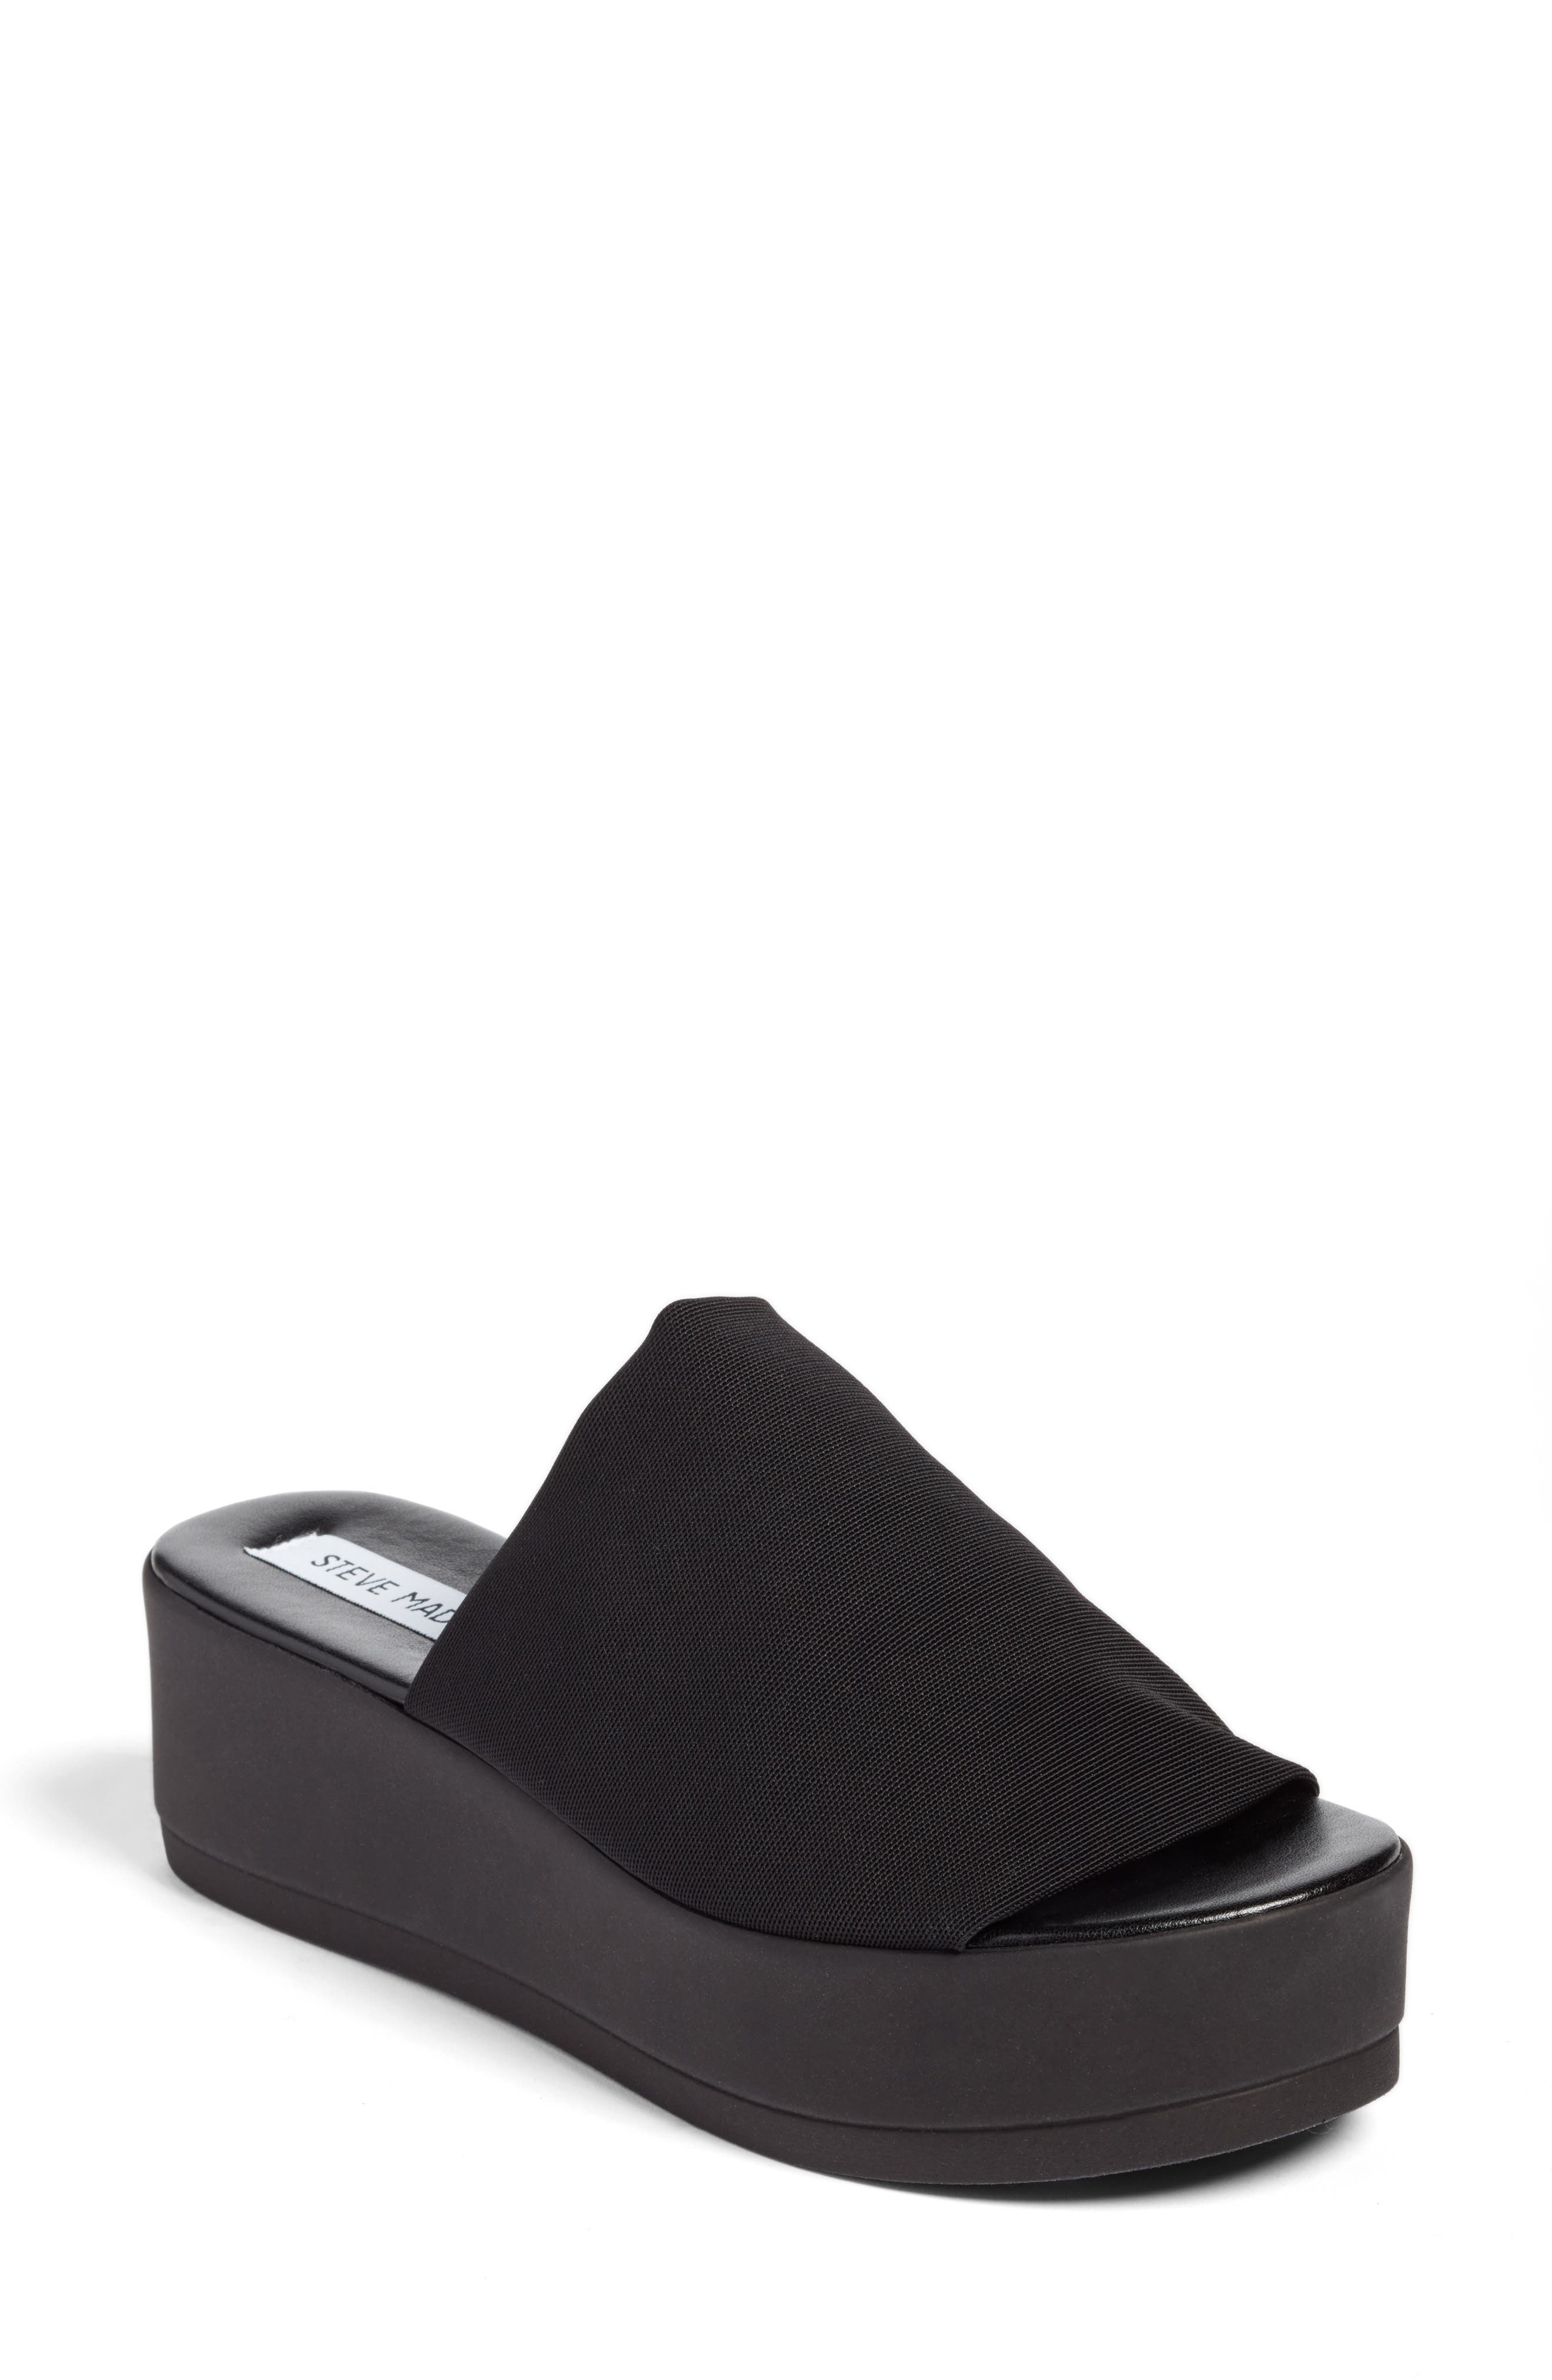 Alternate Image 1 Selected - Steve Madden Slinky Platform Sandal (Women)